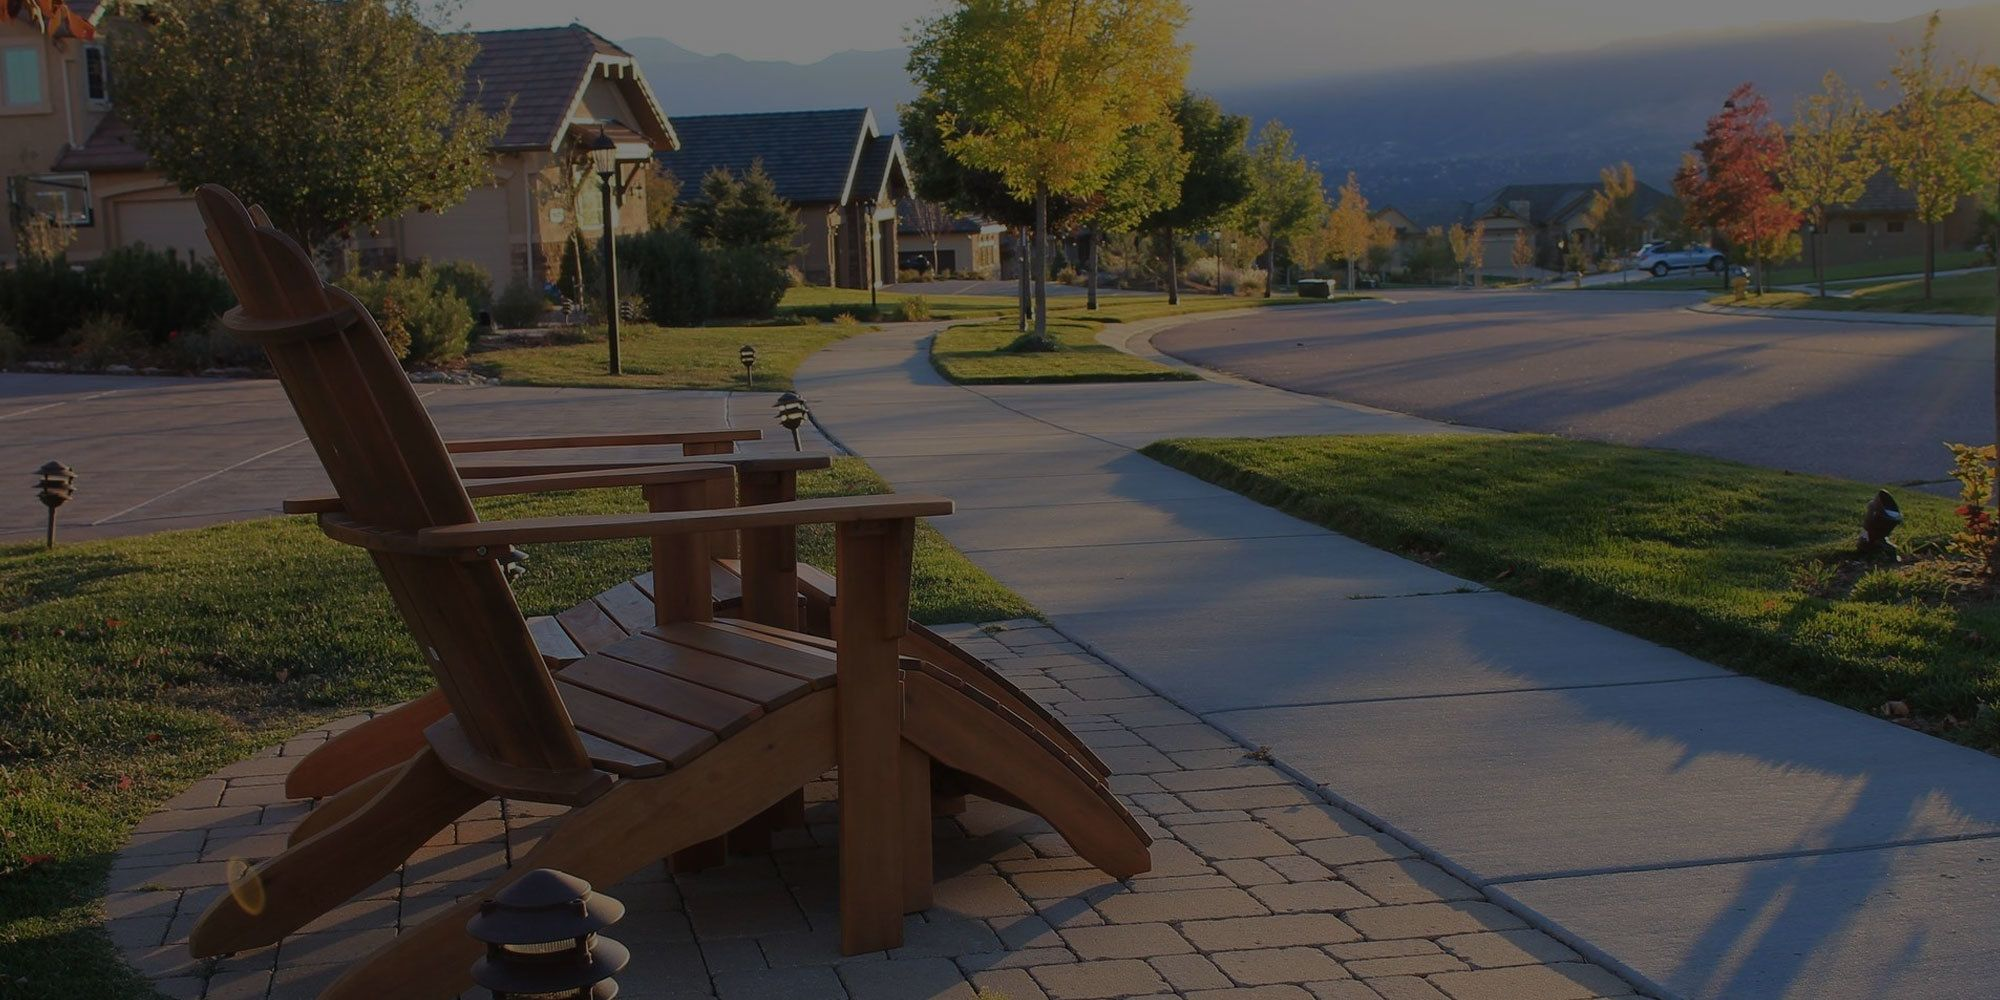 woodleaf realty colorado springs co homes for sale